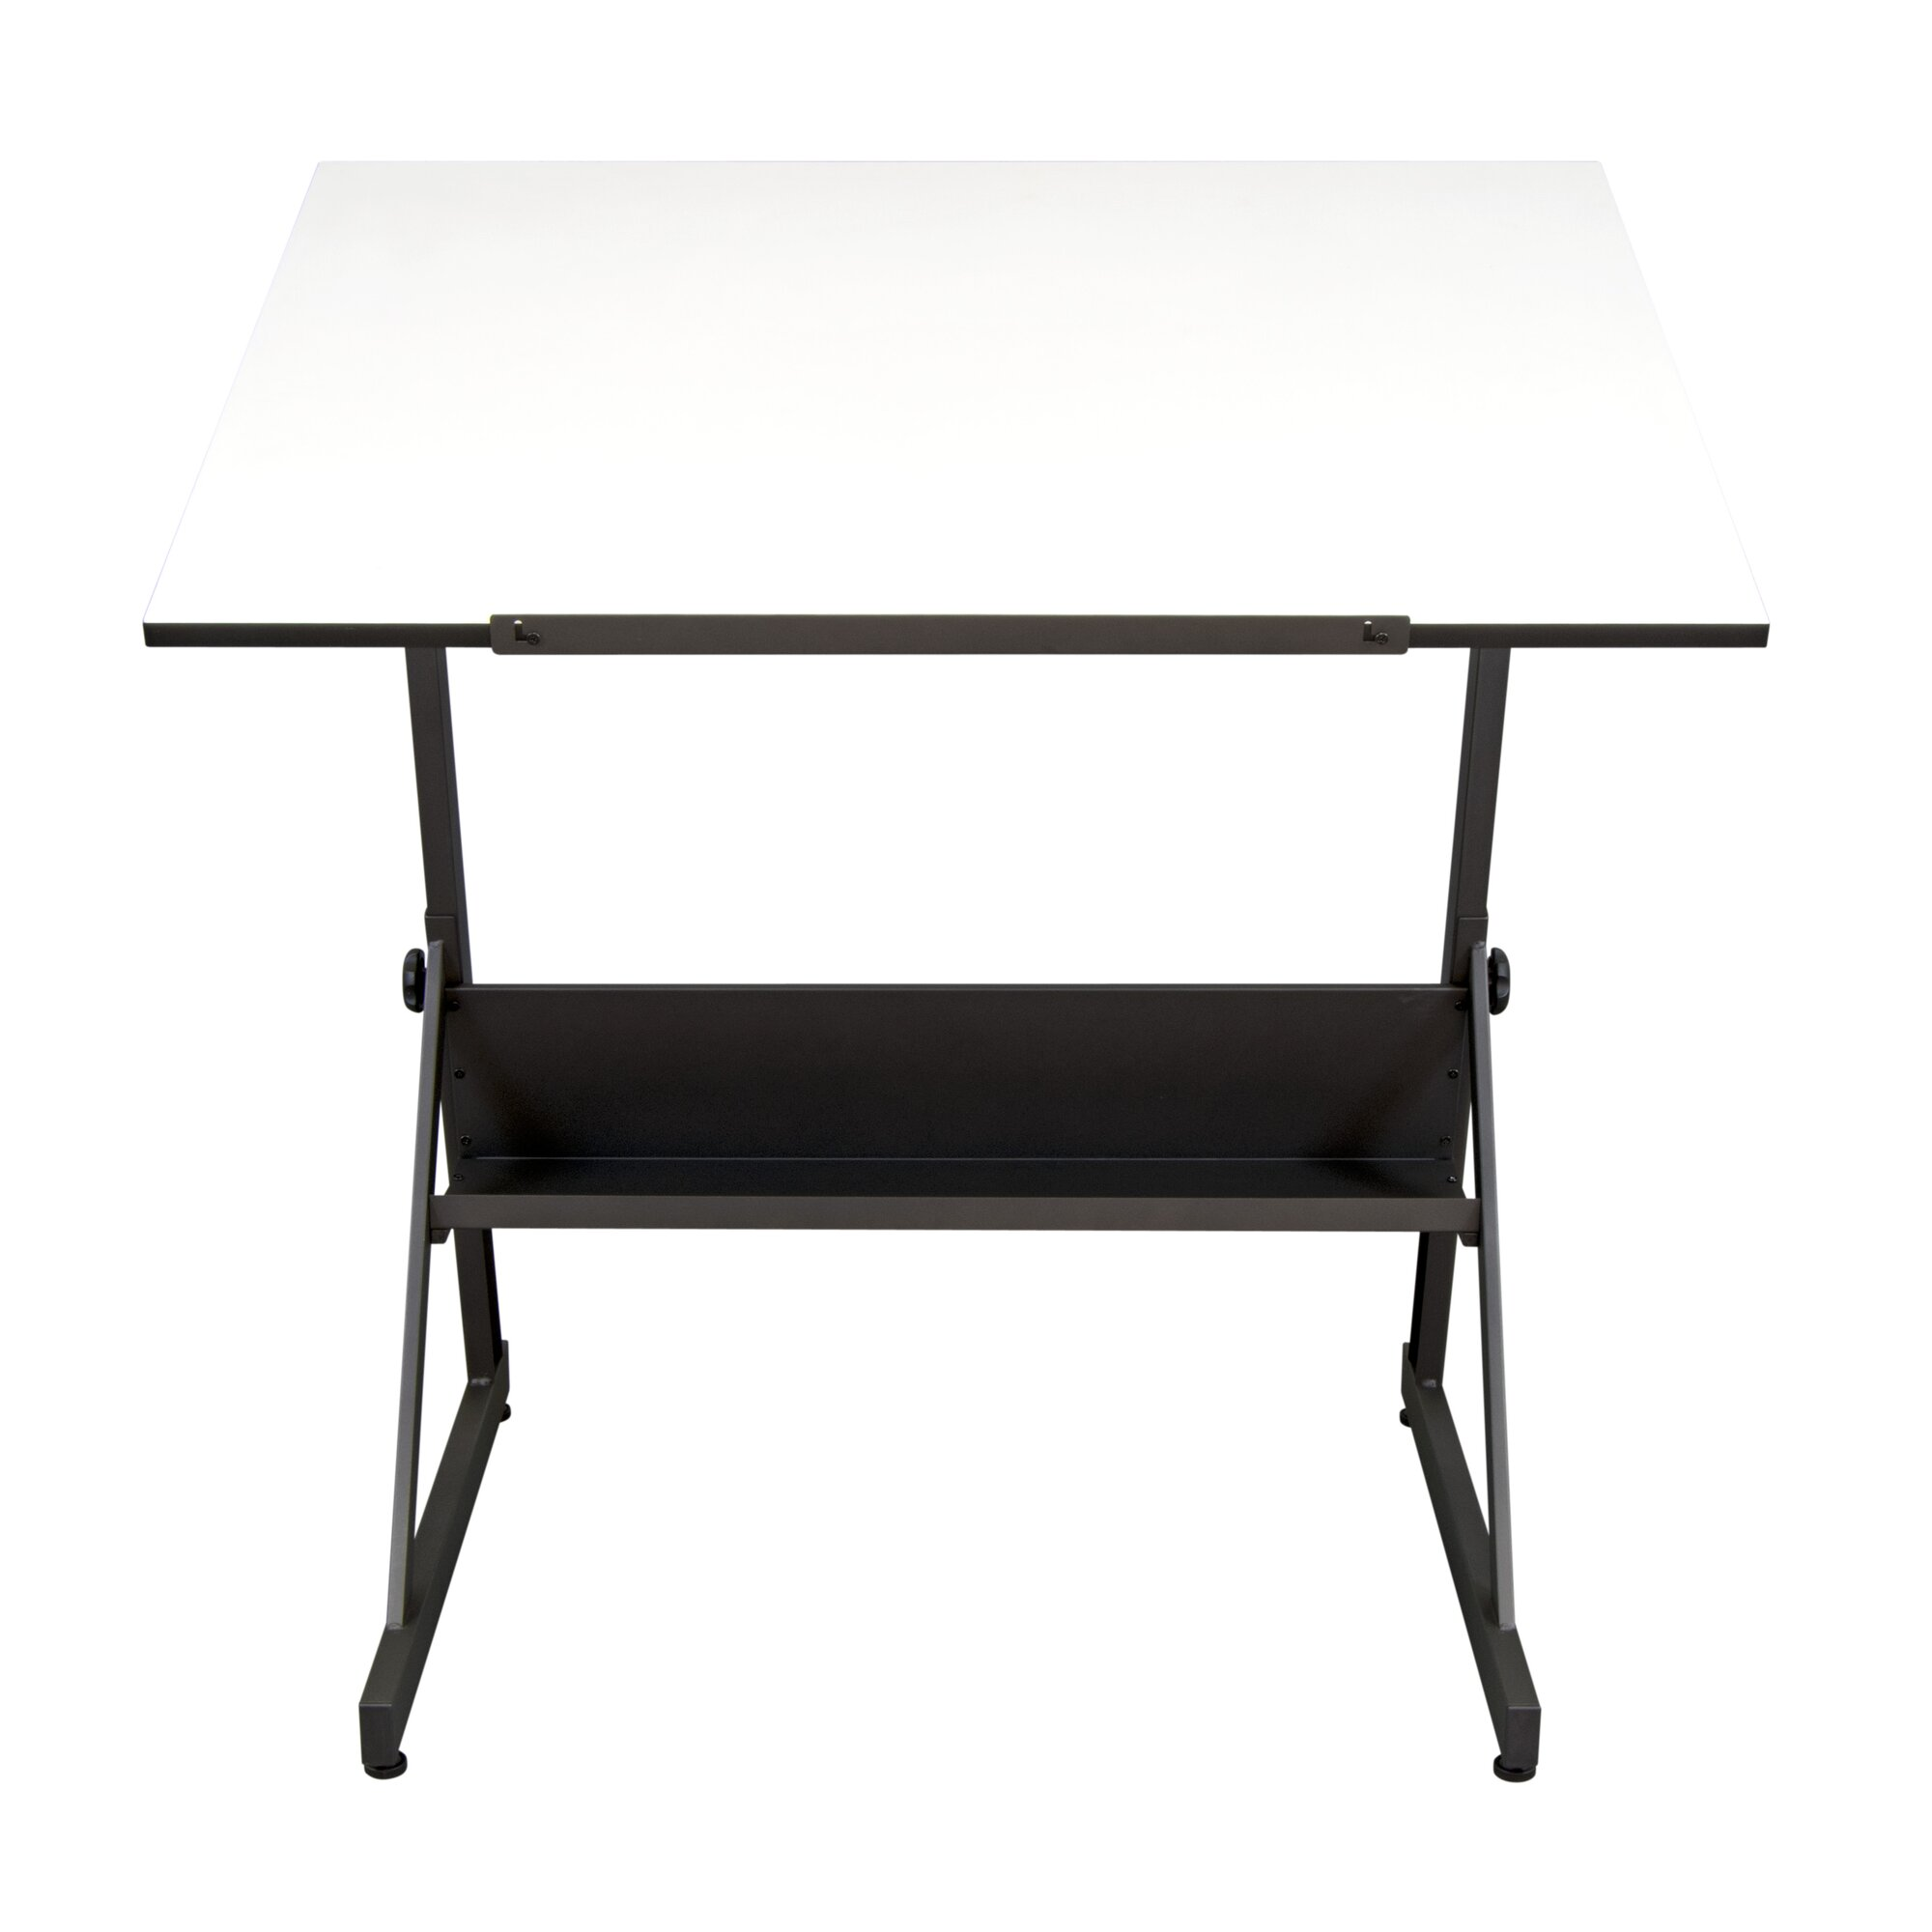 Studio Design Drafting Table studio designs futura advanced drafting table with side shelf drafting drawing tables at hayneedle Solano Adjustable Drafting Table